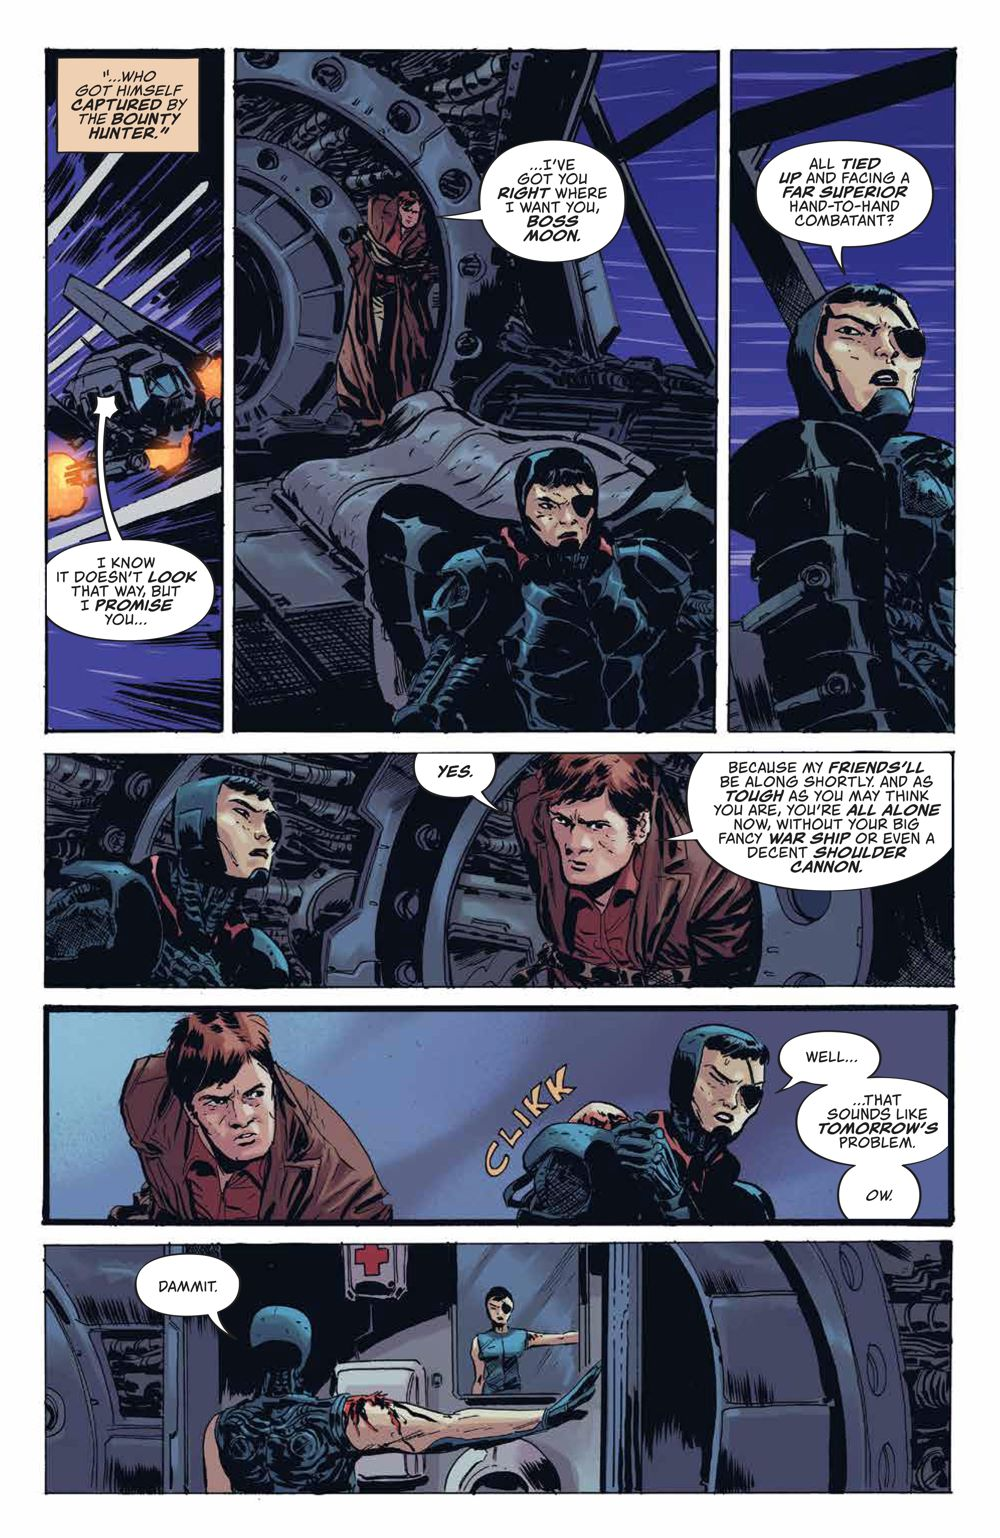 Firefly_UnificationWar_v2_SC_PRESS_12 ComicList Previews: FIREFLY THE UNIFICATION WAR VOLUME 2 TP